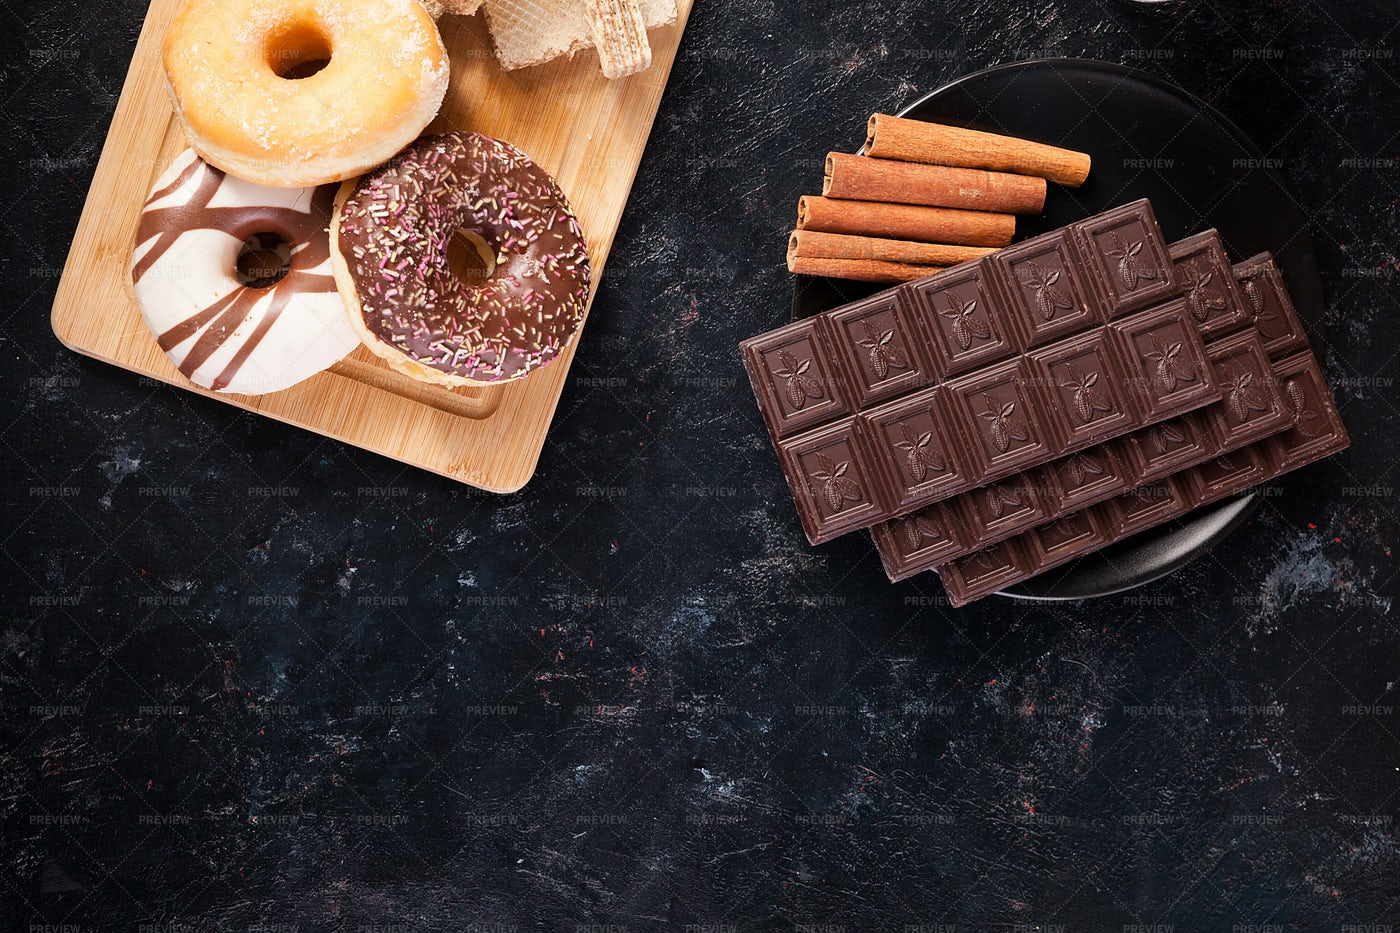 Top View Of Chocolate And Donuts: Stock Photos